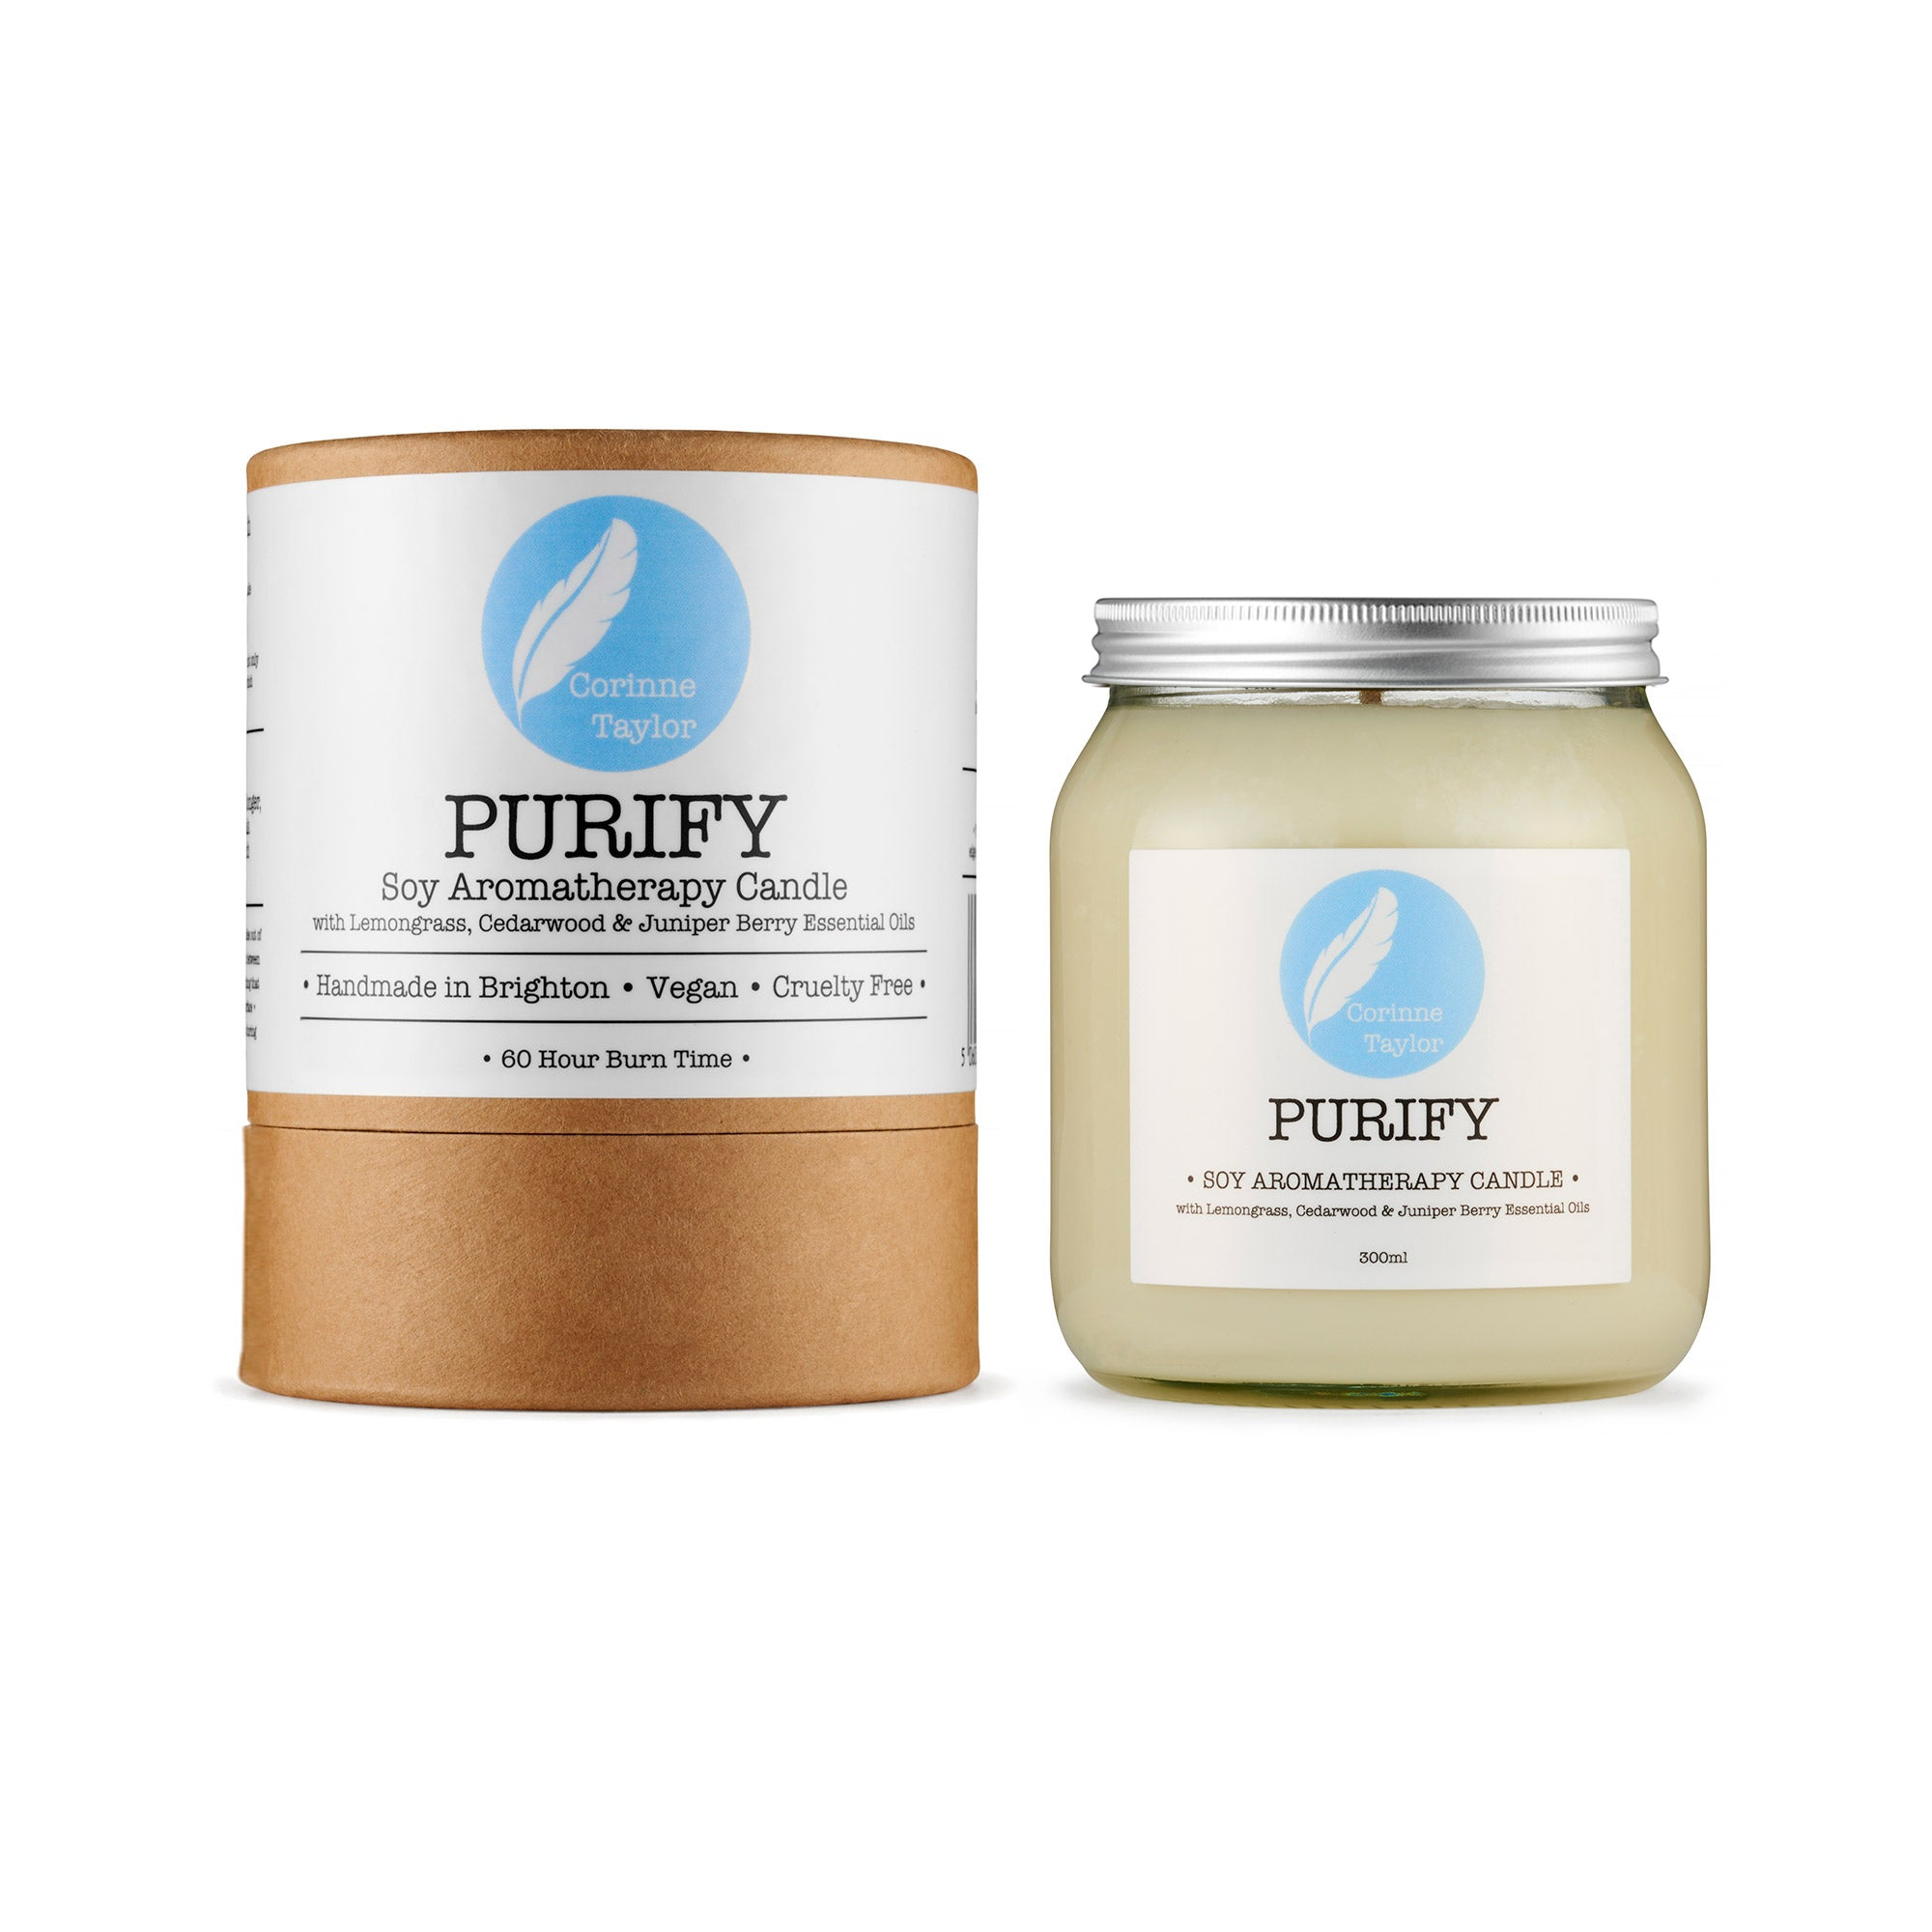 Purify Soy Aromatherapy candle by Corinne Taylor. 100% natural, vegan, plant based, cruelty free. With Lemongrass, Cedarwood & Juniper Berry essential oils. A refreshing, grounding scent, rich with citrus notes and a hint of the forest.